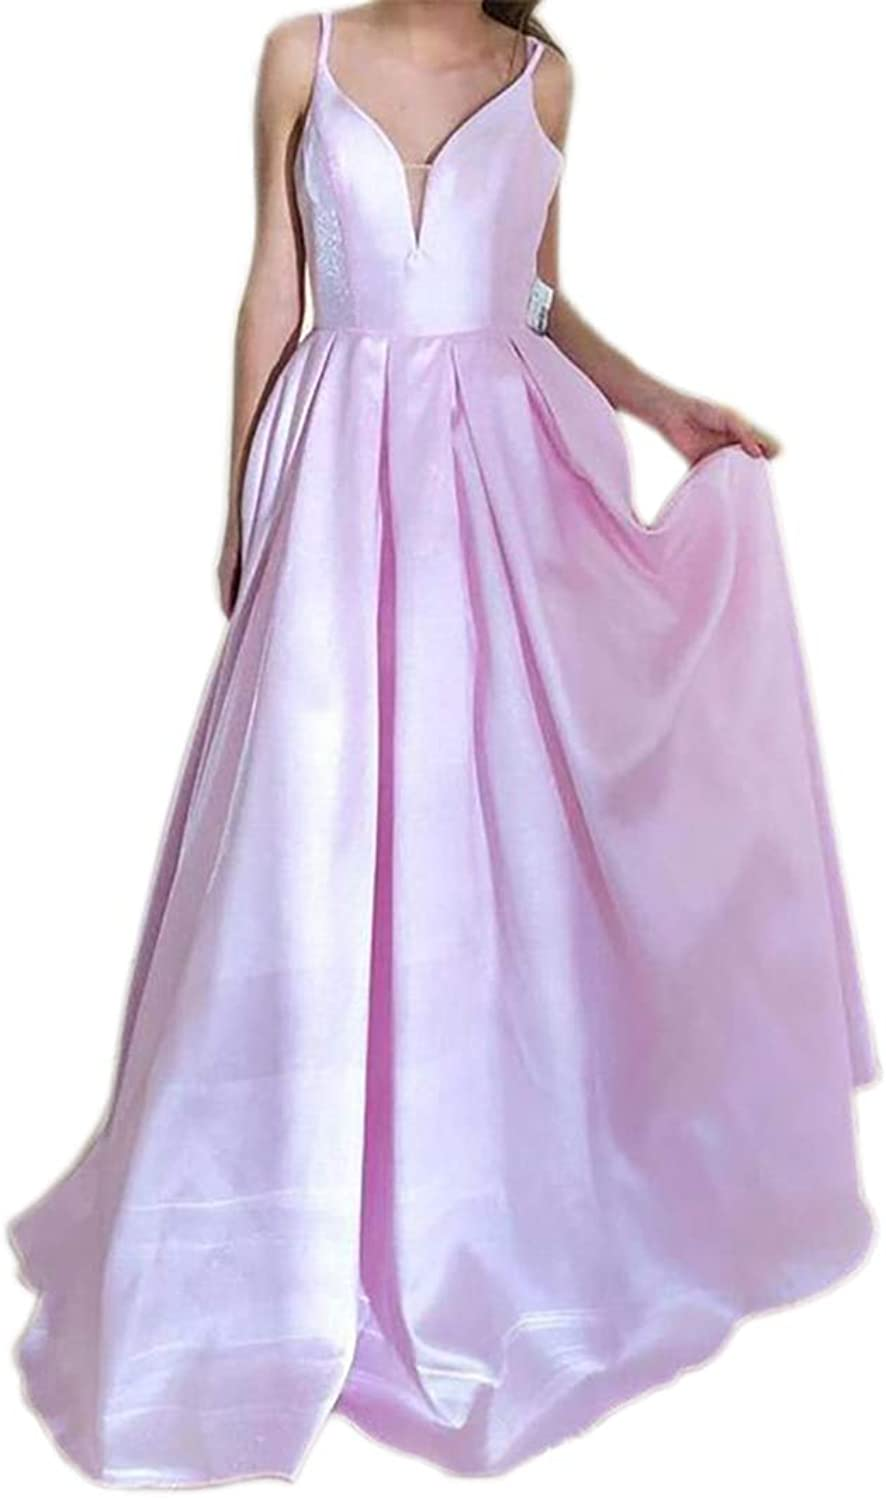 ONLYCE ALine Spaghetti Straps VNeck Satin Long Prom Dress Formal Evening Gowns